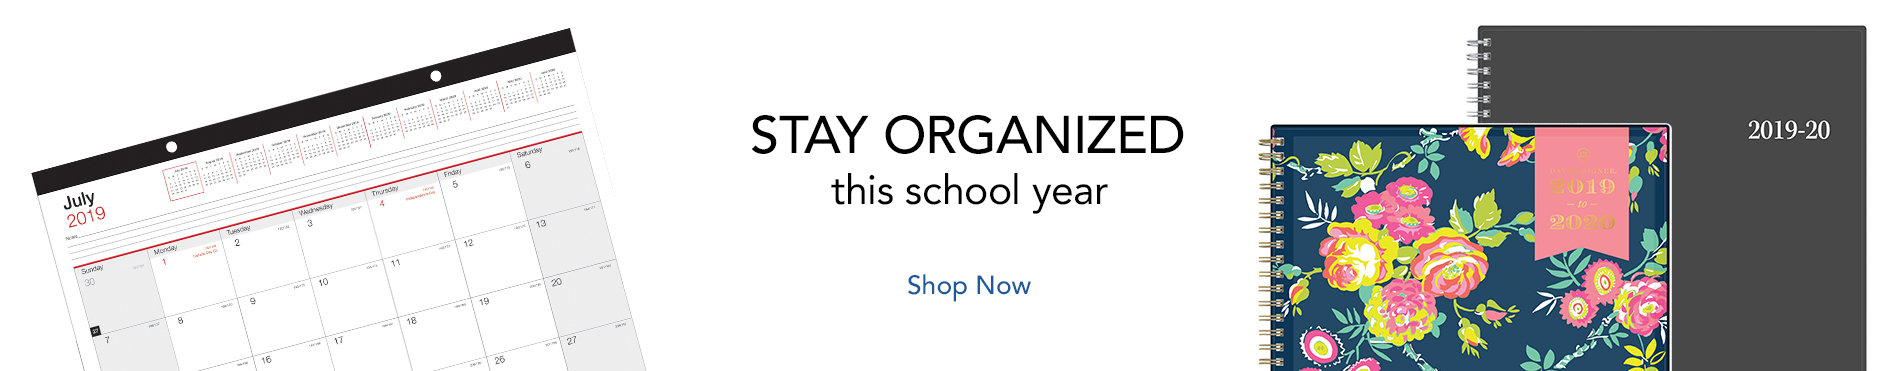 Stay Organized This School Year